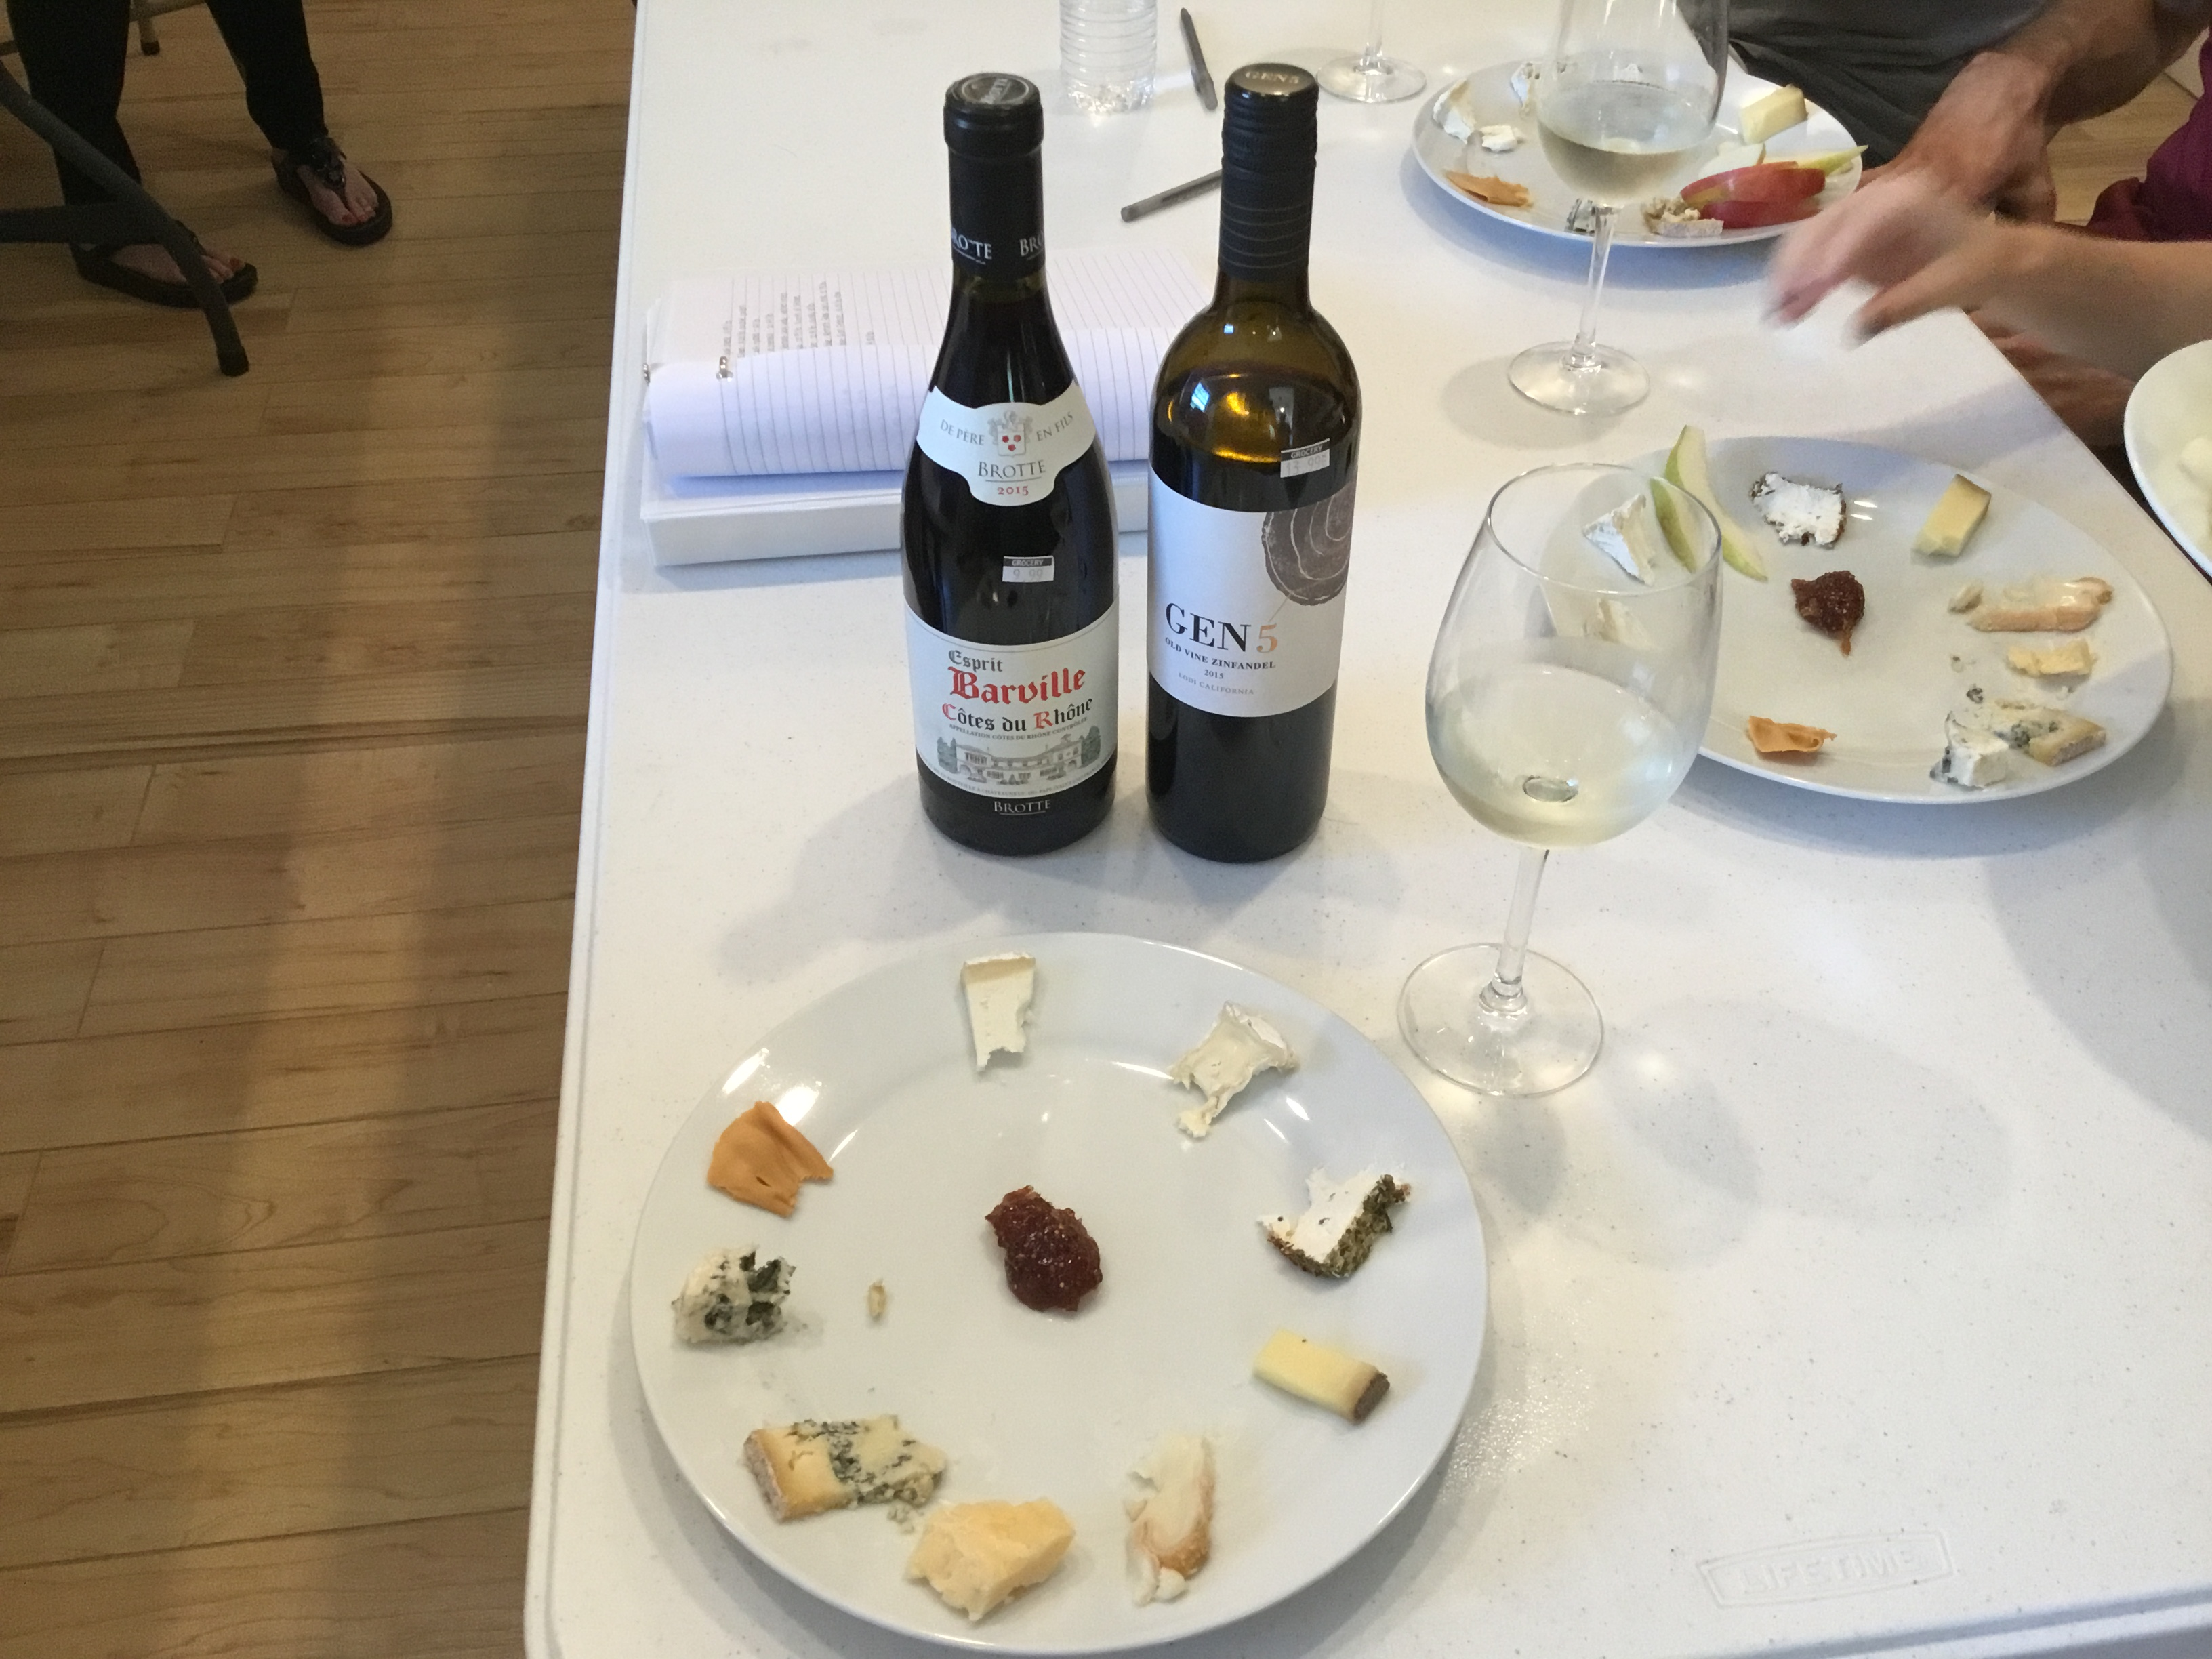 Tasting cheese and wine in Cheesemaking class